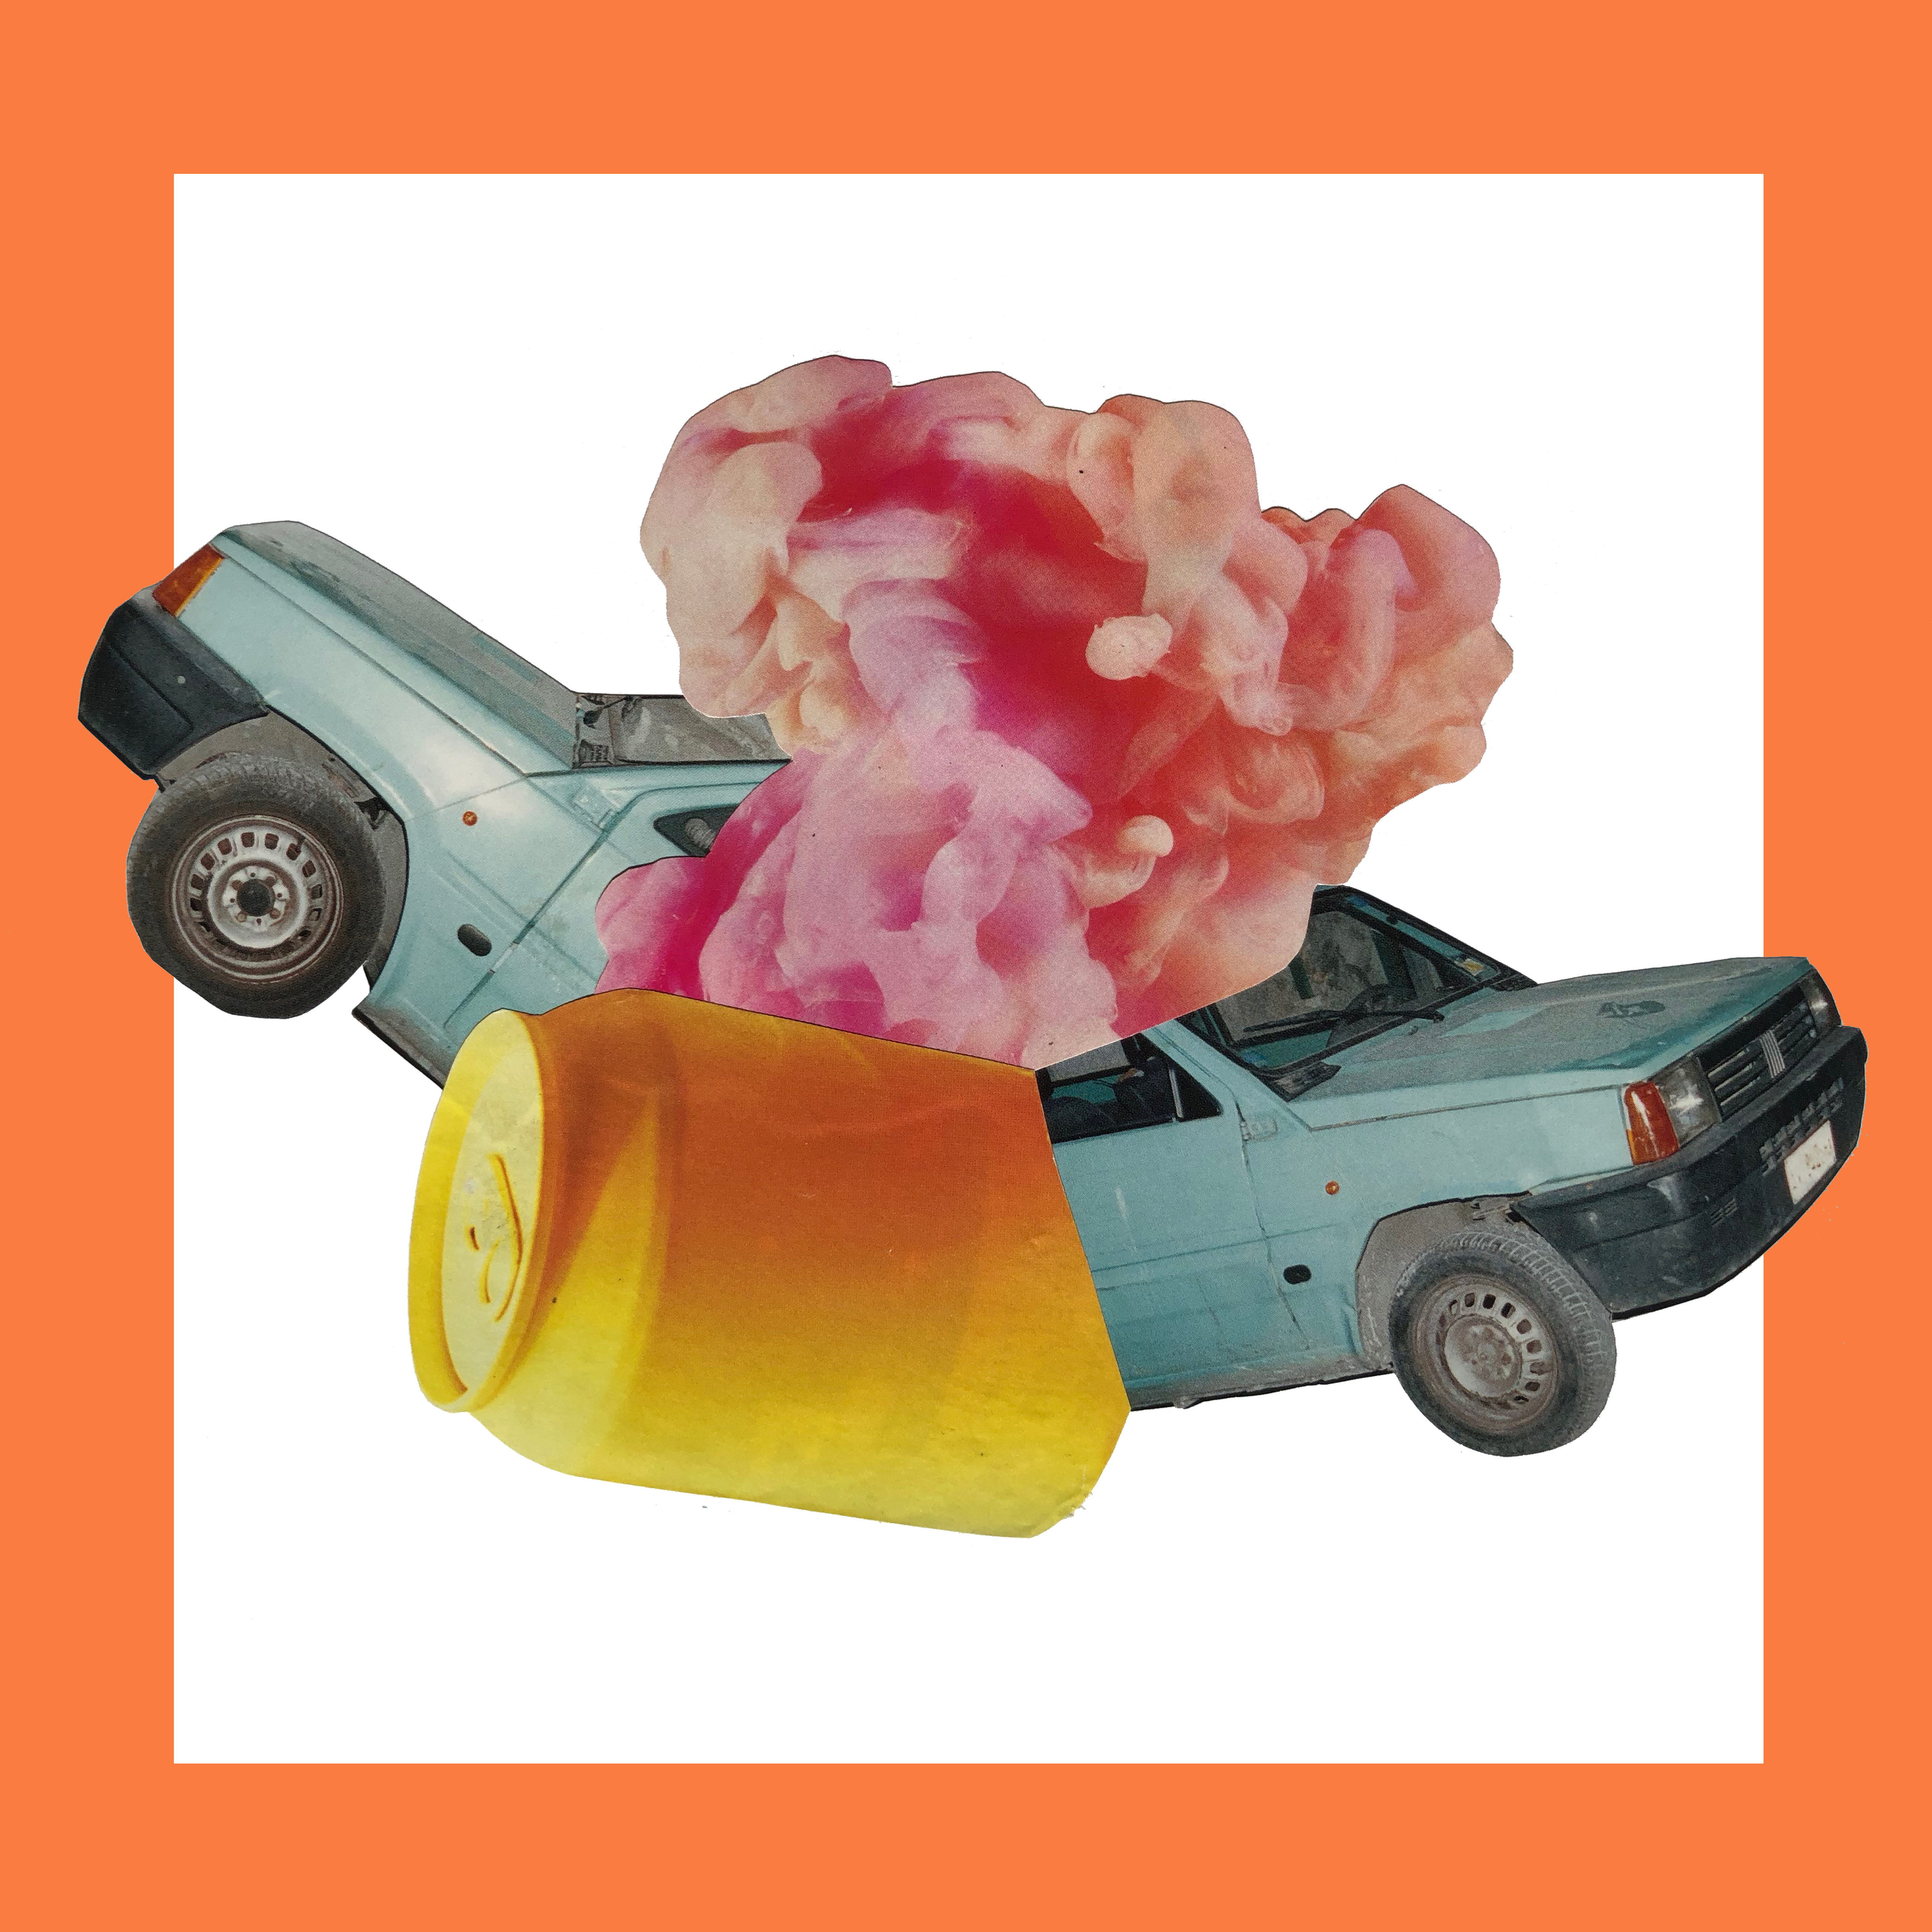 car_cottoncandy_border